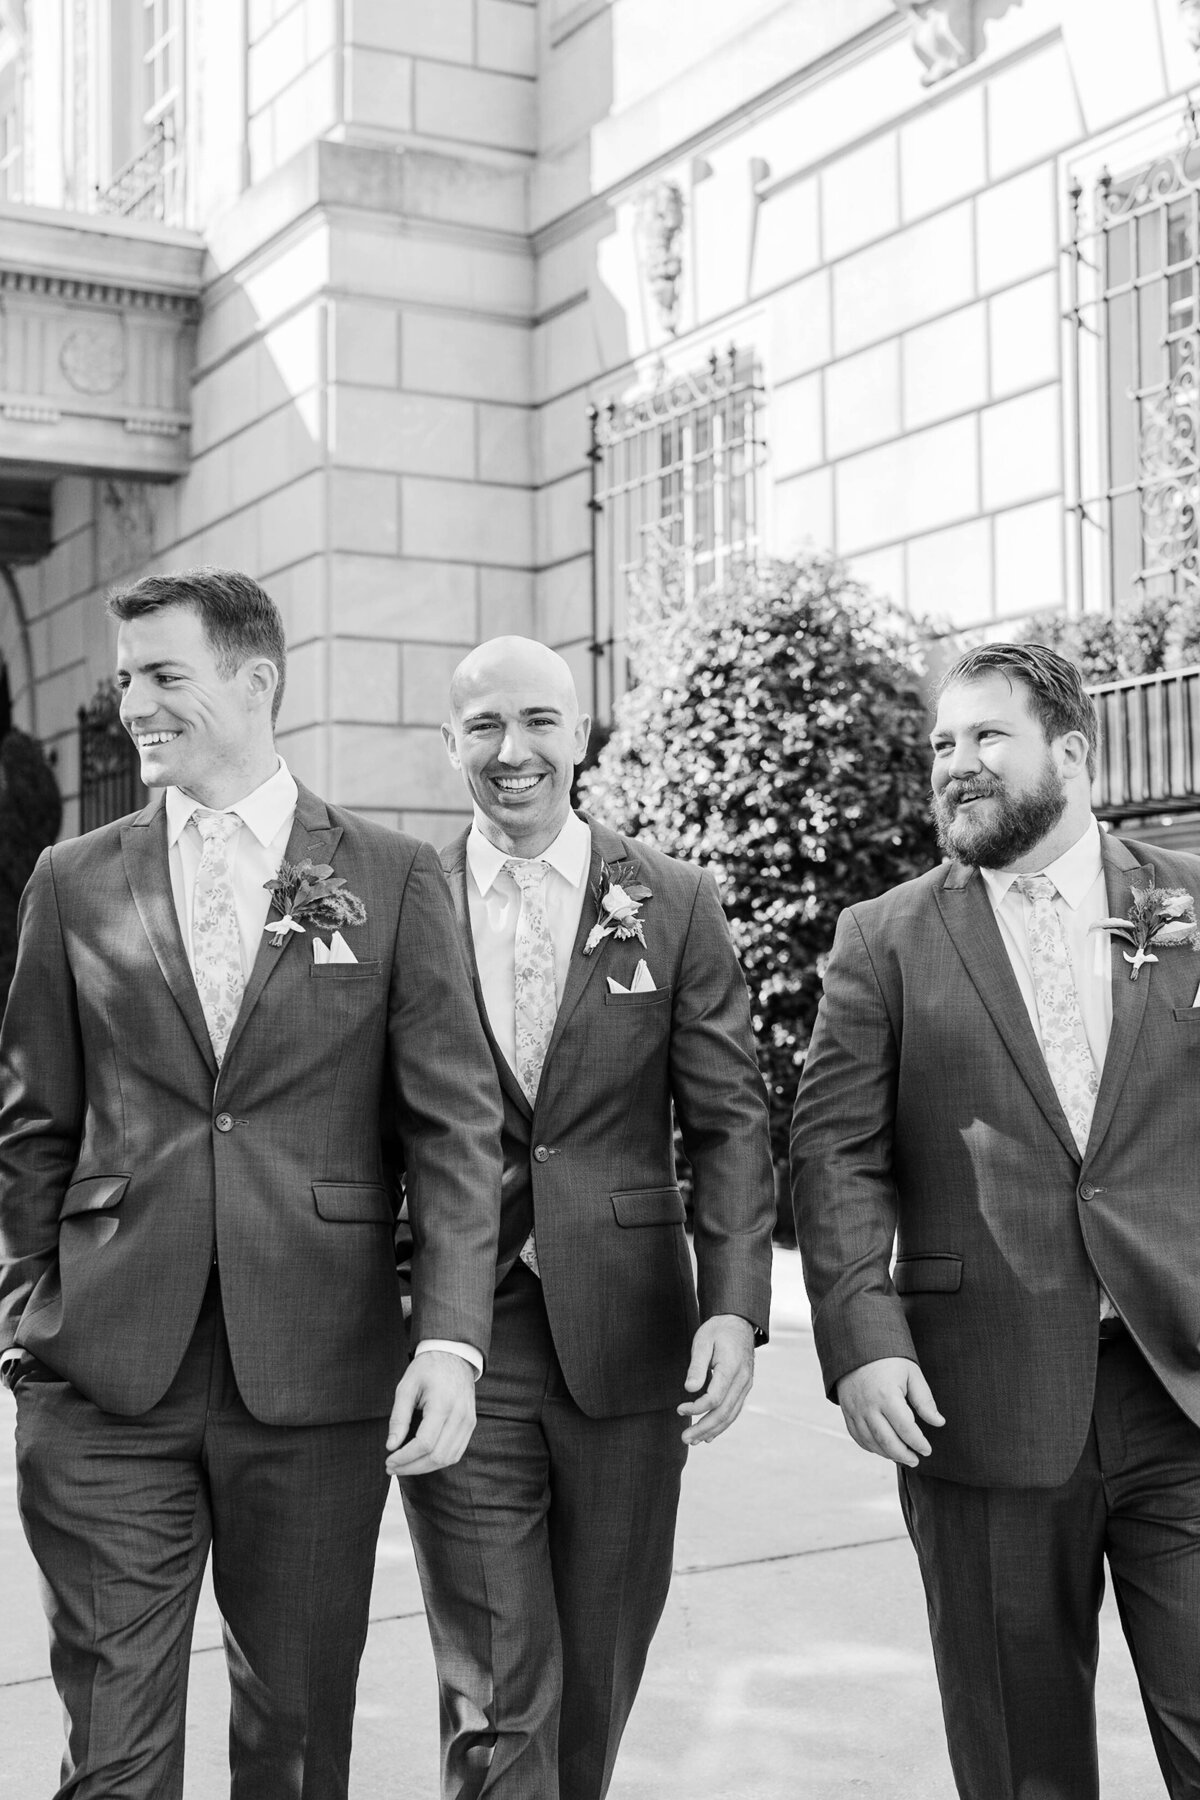 Jennifer Bosak Photography - DC Area Wedding Photography - DC, Virginia, Maryland - Jeanna + Michael - Decatur House Wedding - 63